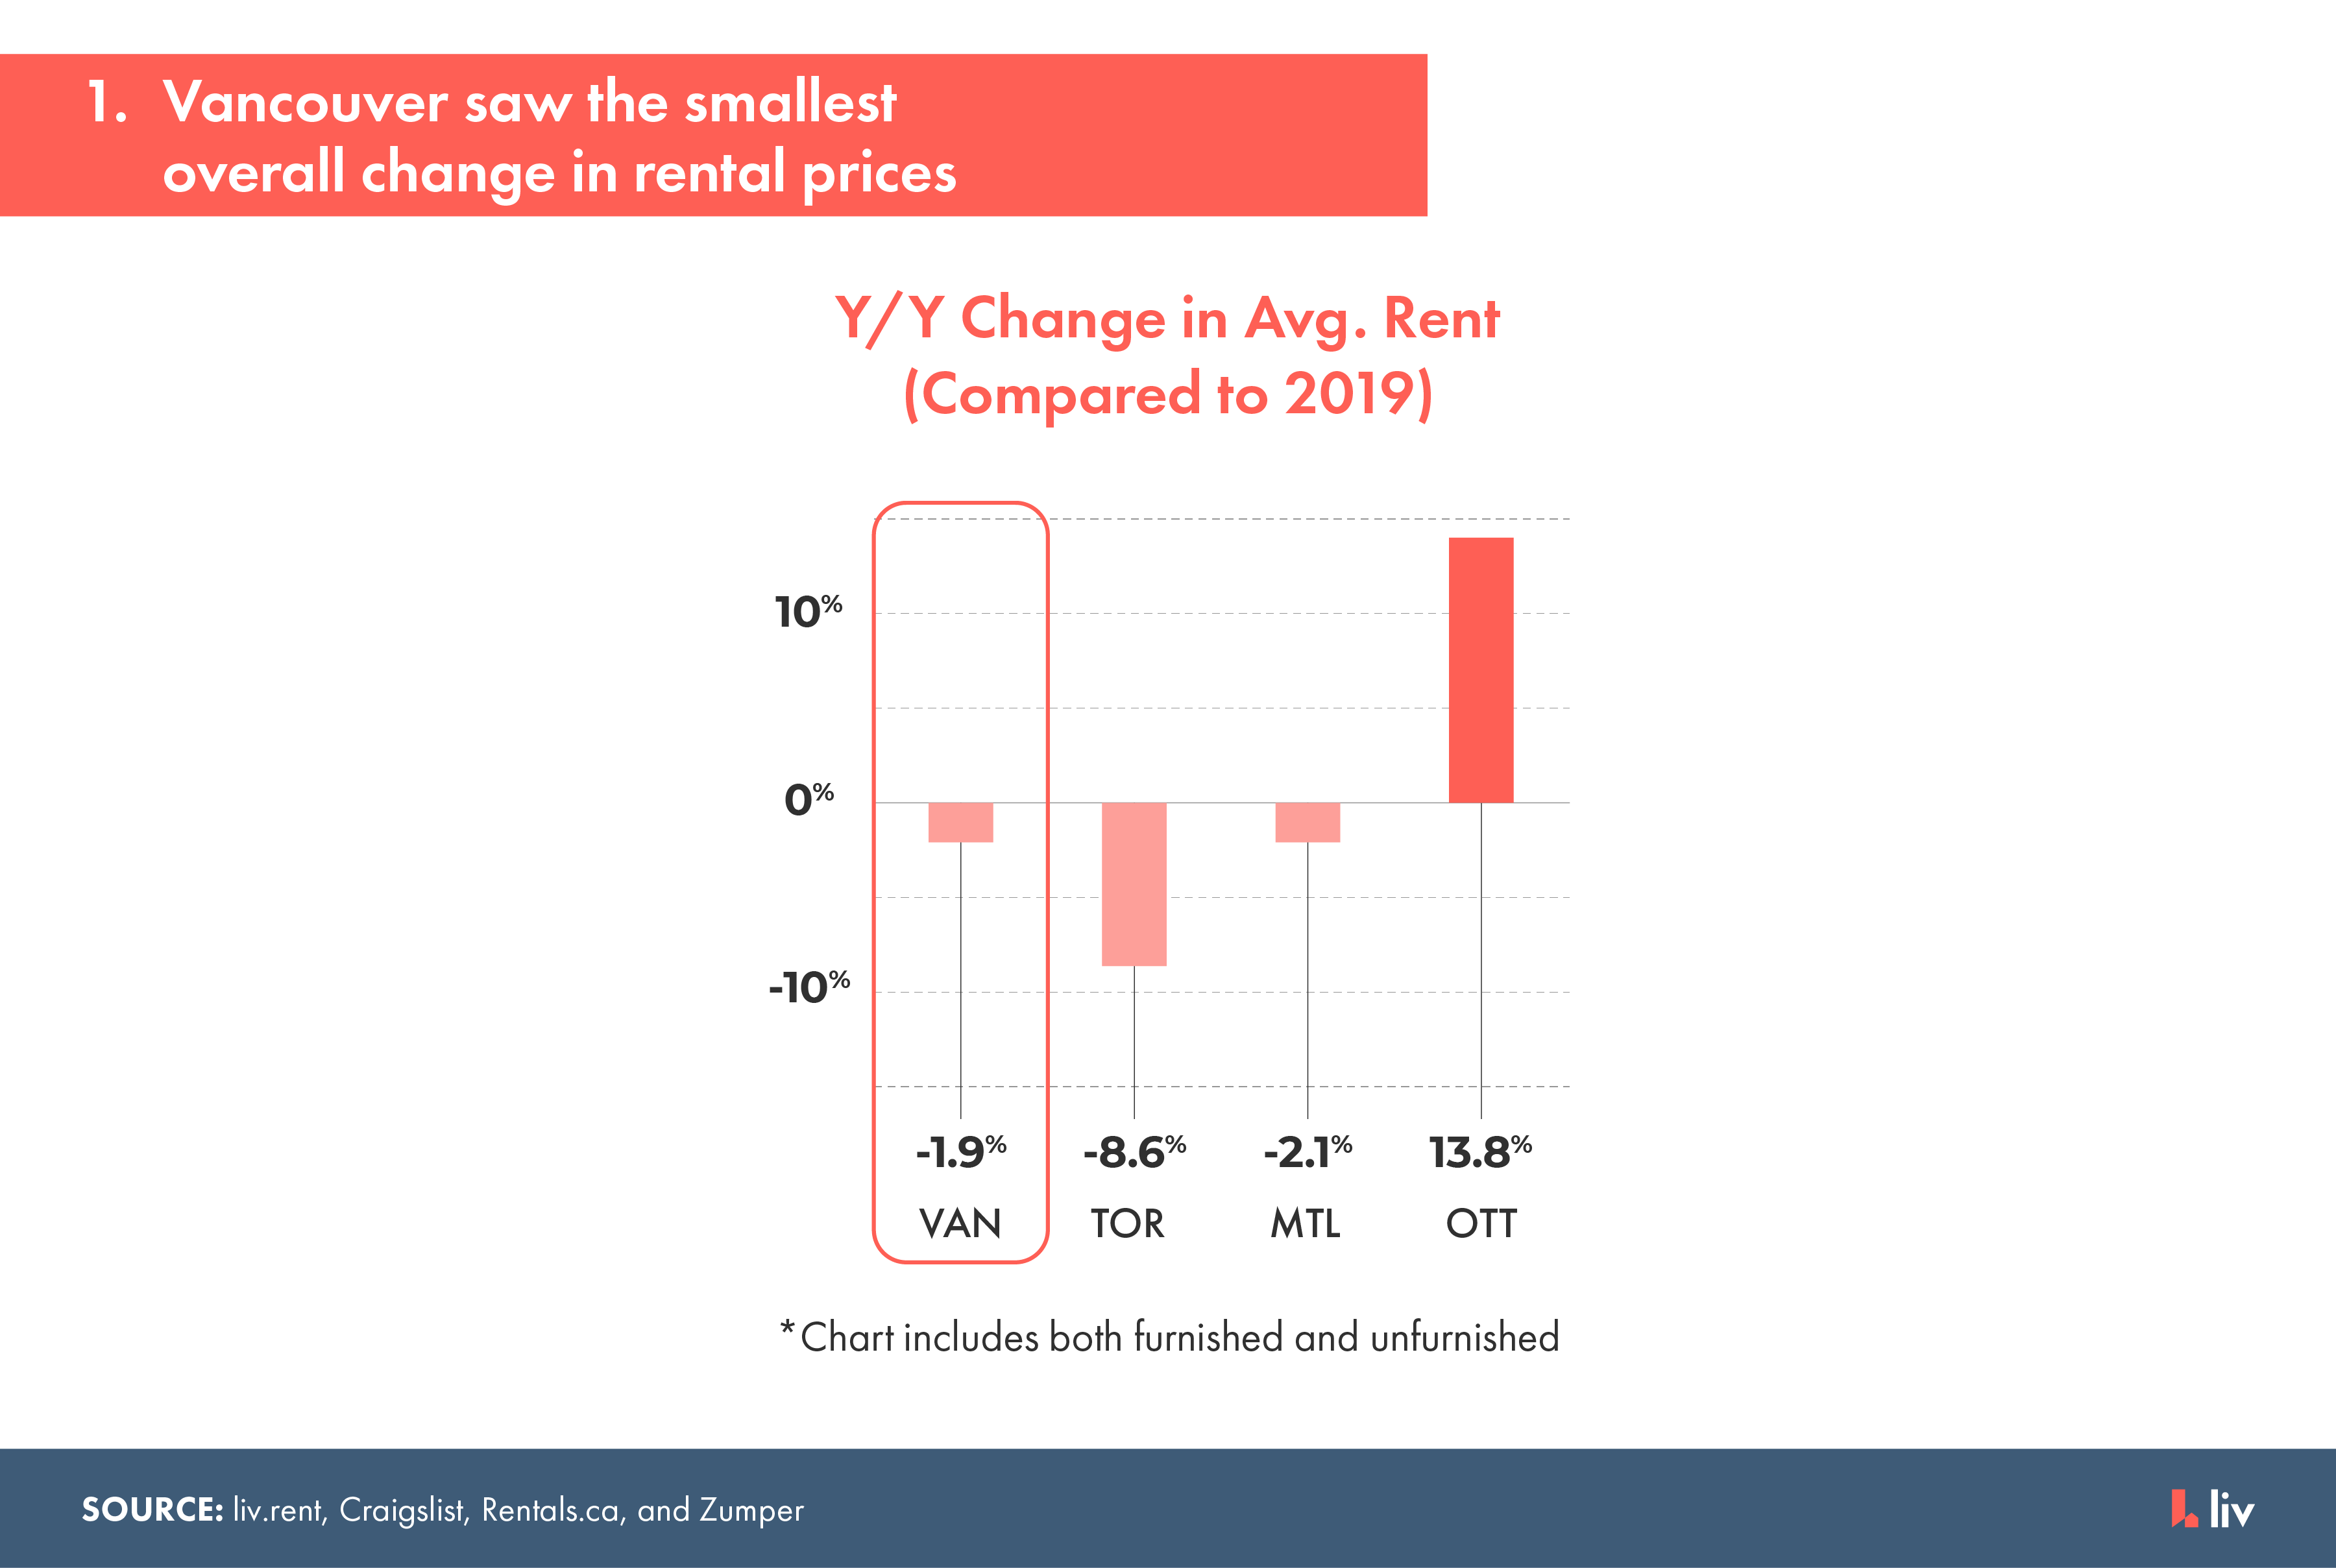 vancouver saw the smallest overall change in rental prices for 2020